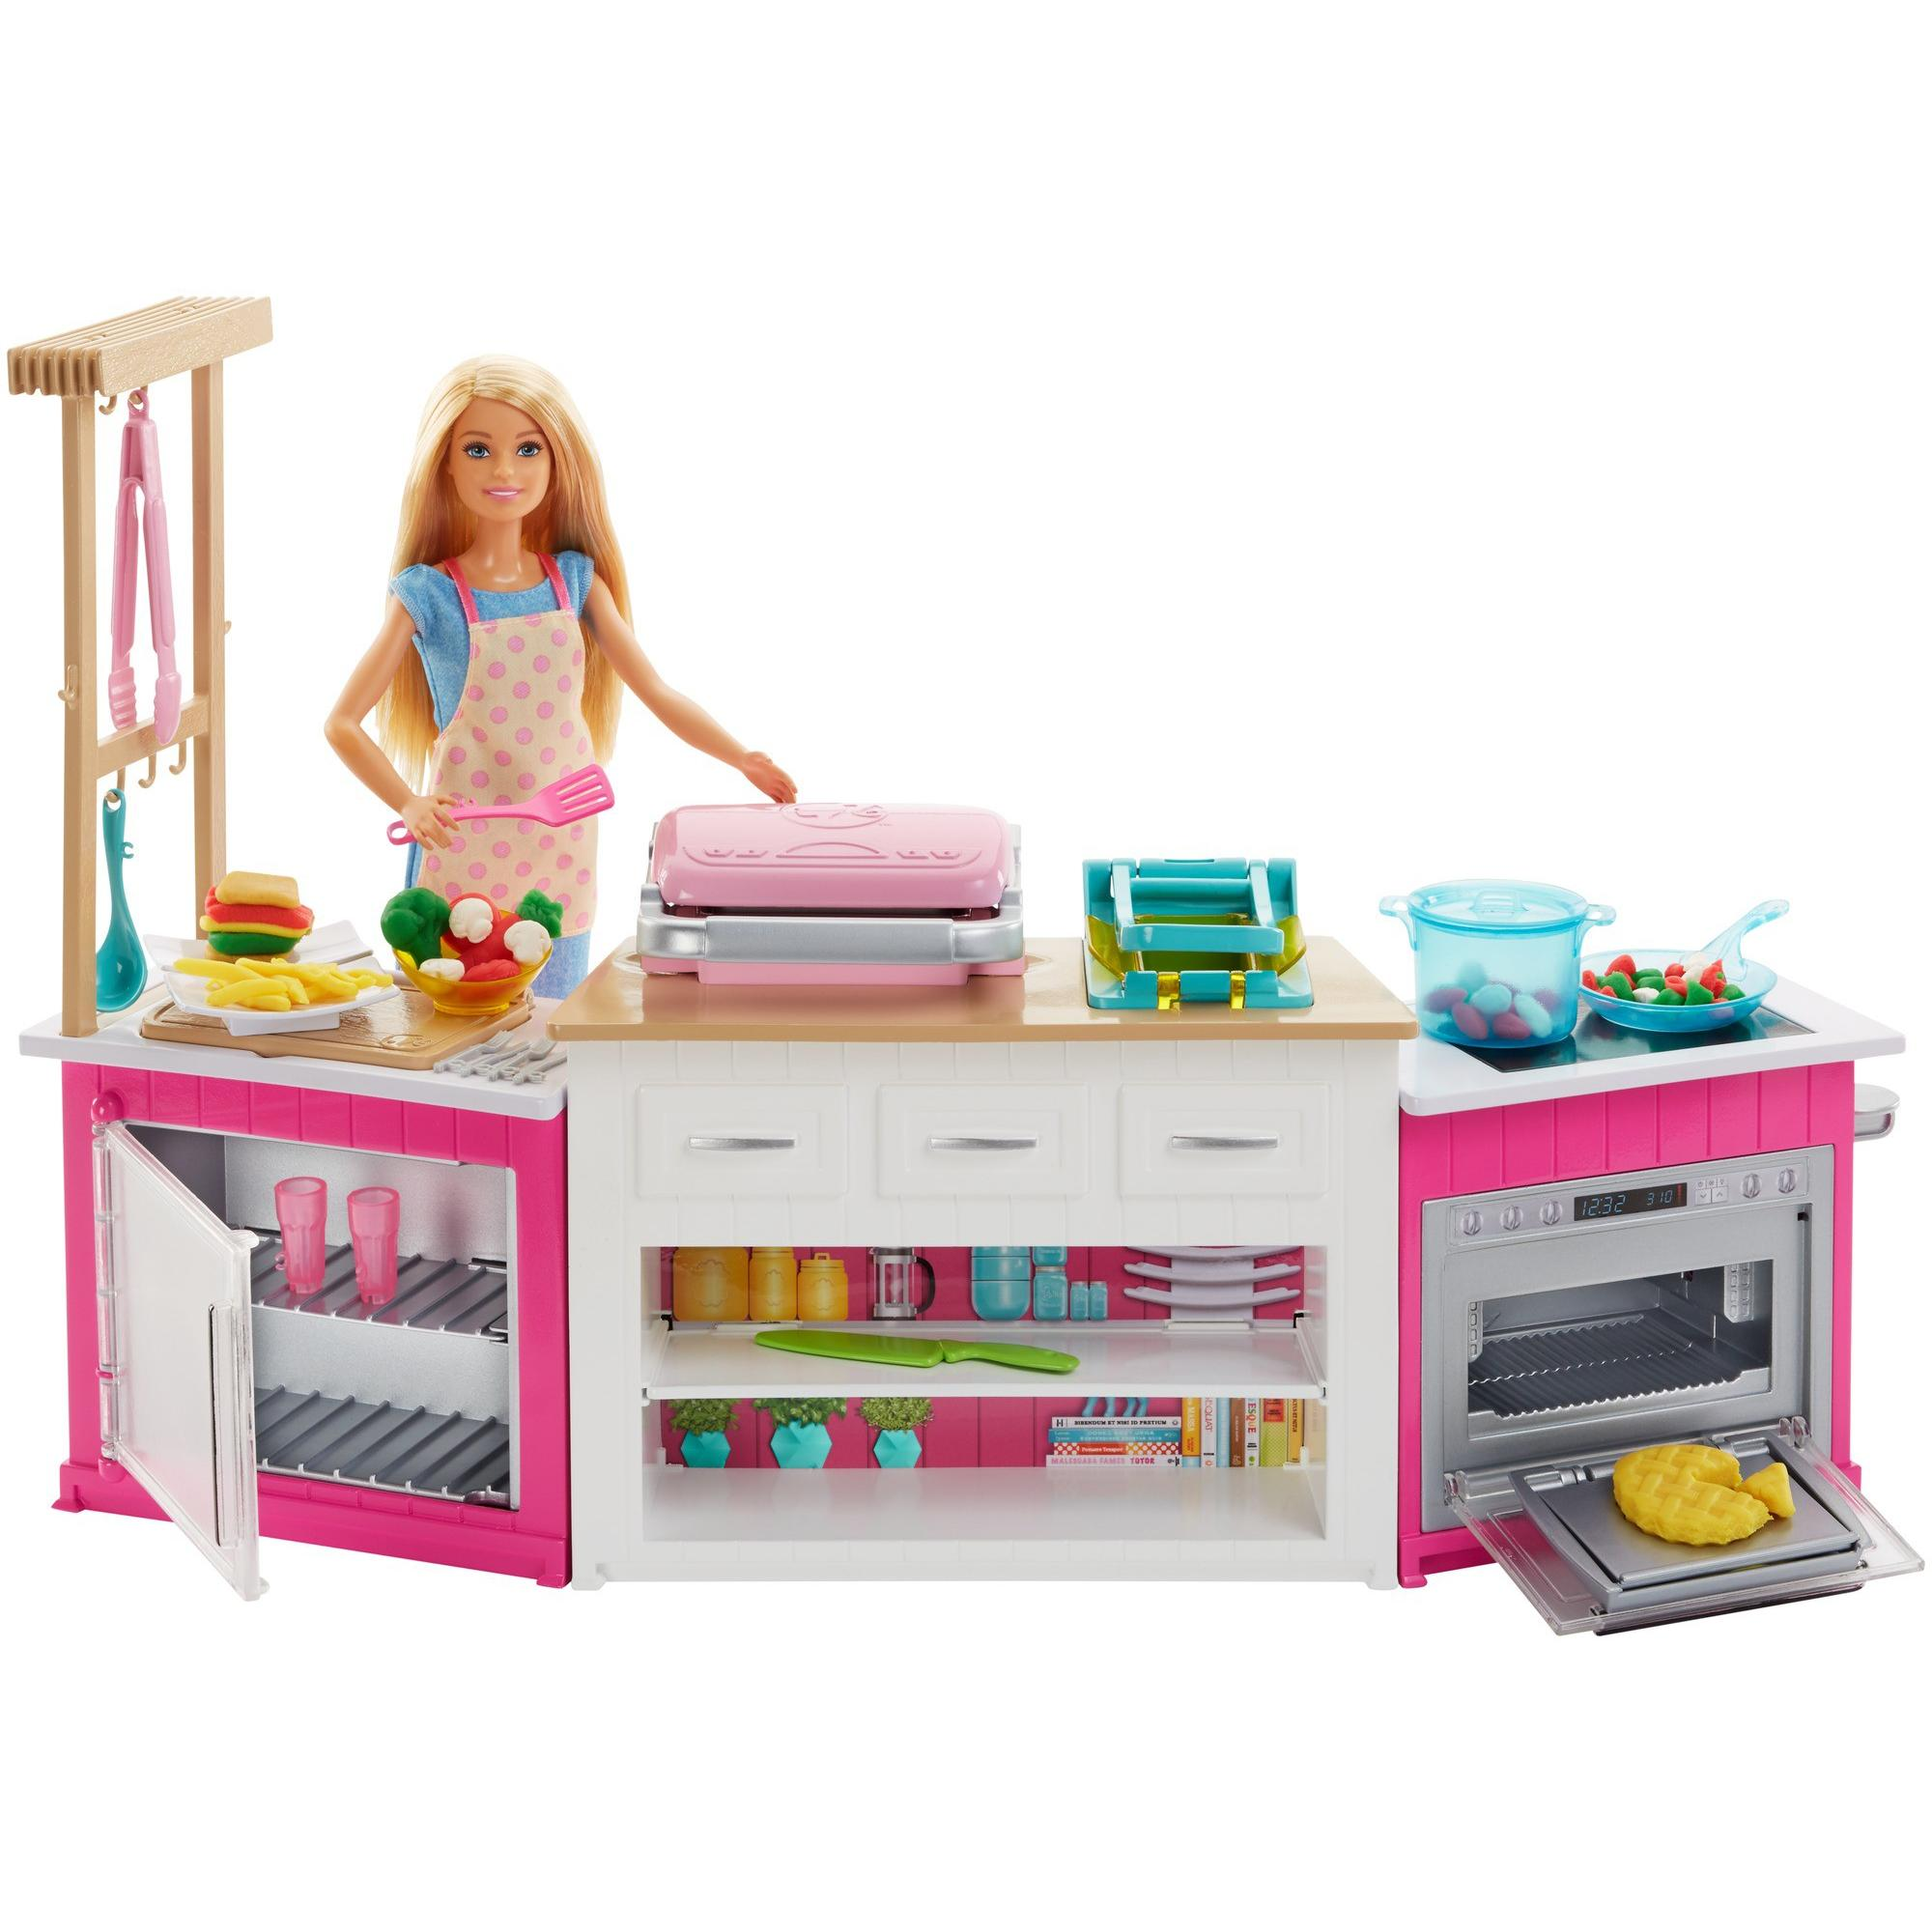 Barbie Ultimate Kitchen Cooking & Baking Playset with Chef Doll by Mattel